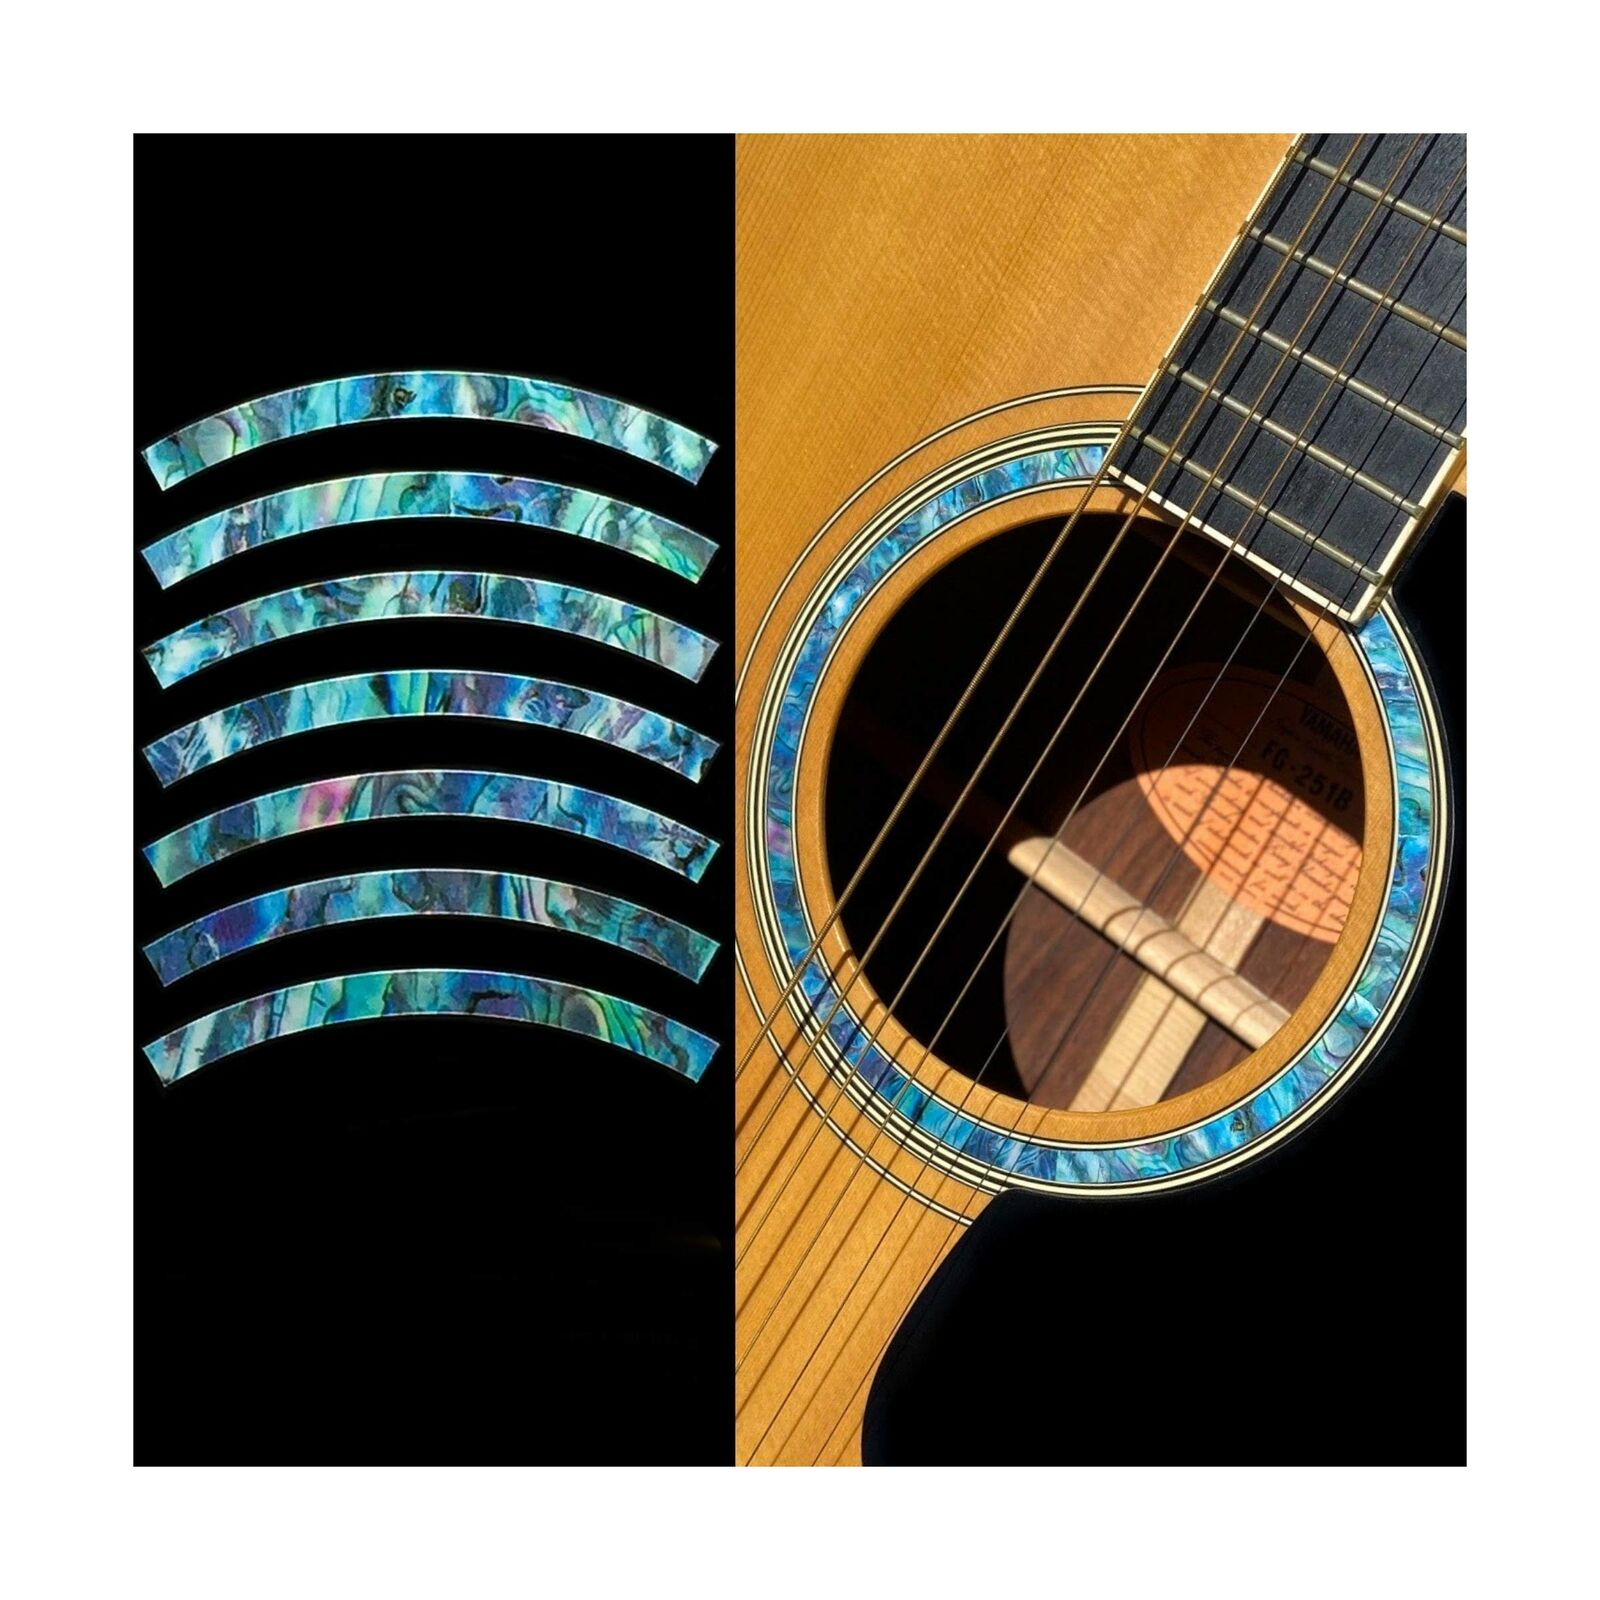 Artibetter 3pcs Guitar Rosette Soundhole Decals Inlay Stickers Decals for Acoustic Guitar Tenor Ukuleles Musical Instrument Accessories